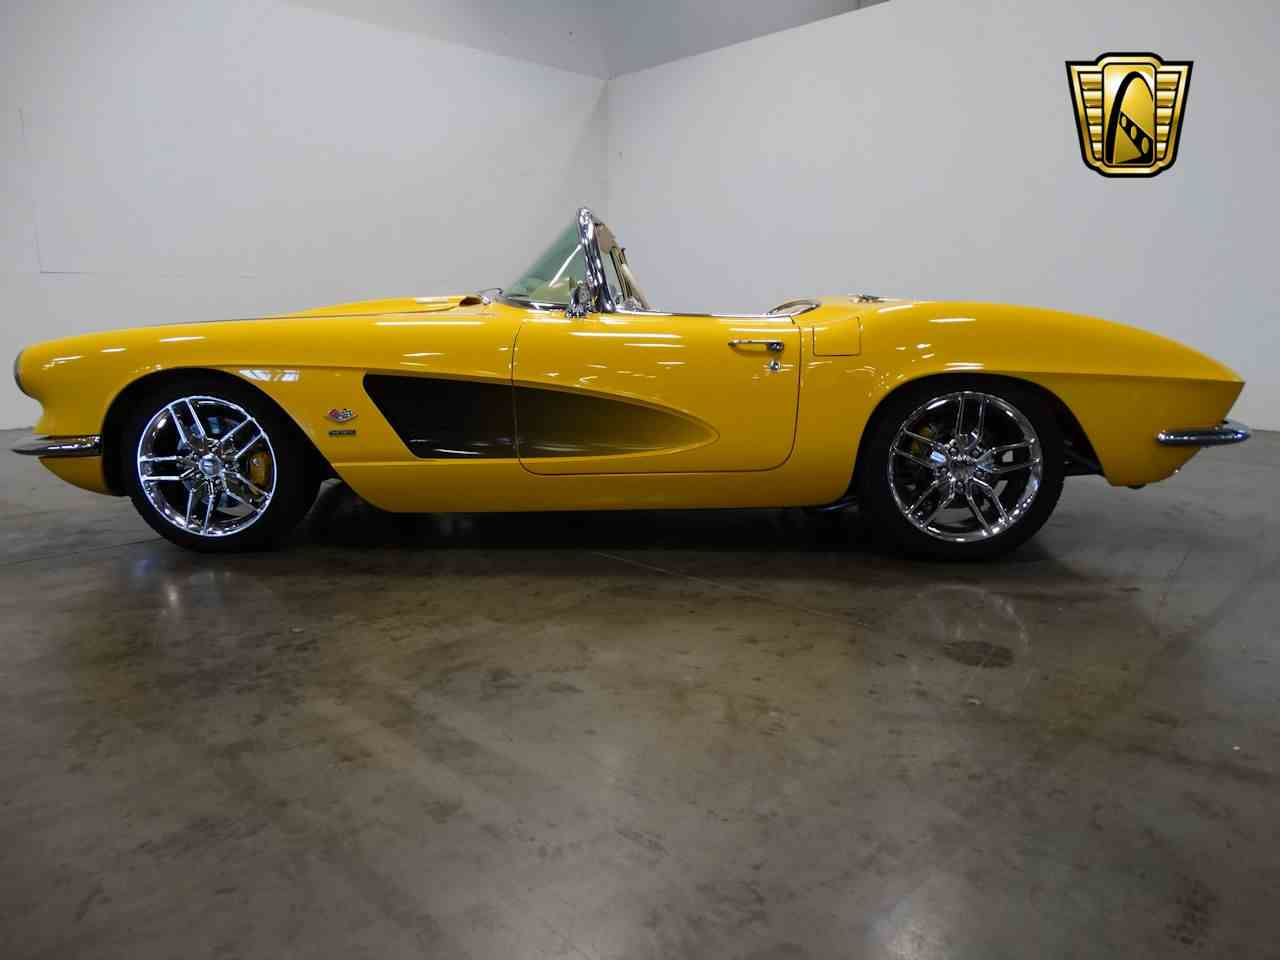 Large Picture of 1962 Corvette located in Tennessee - $210,000.00 Offered by Gateway Classic Cars - Nashville - M2LR